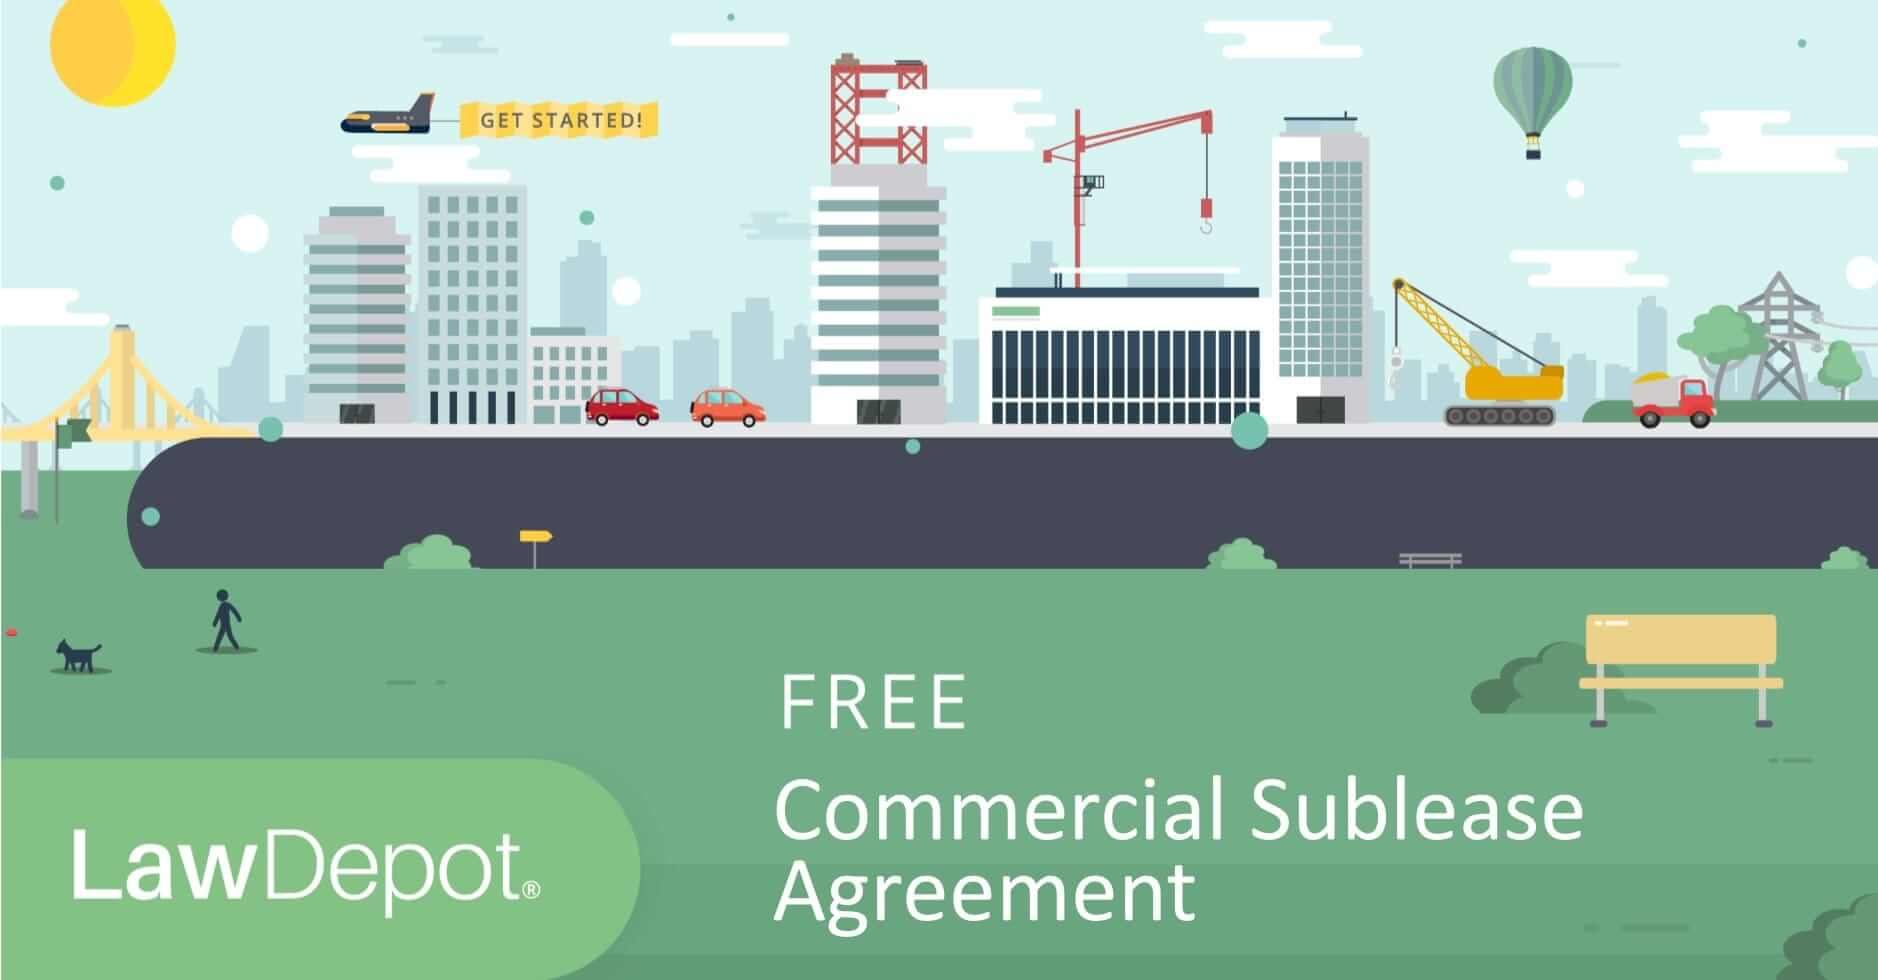 Commercial Sublease Agreement Template US LawDepot - Commercial sublease agreement template